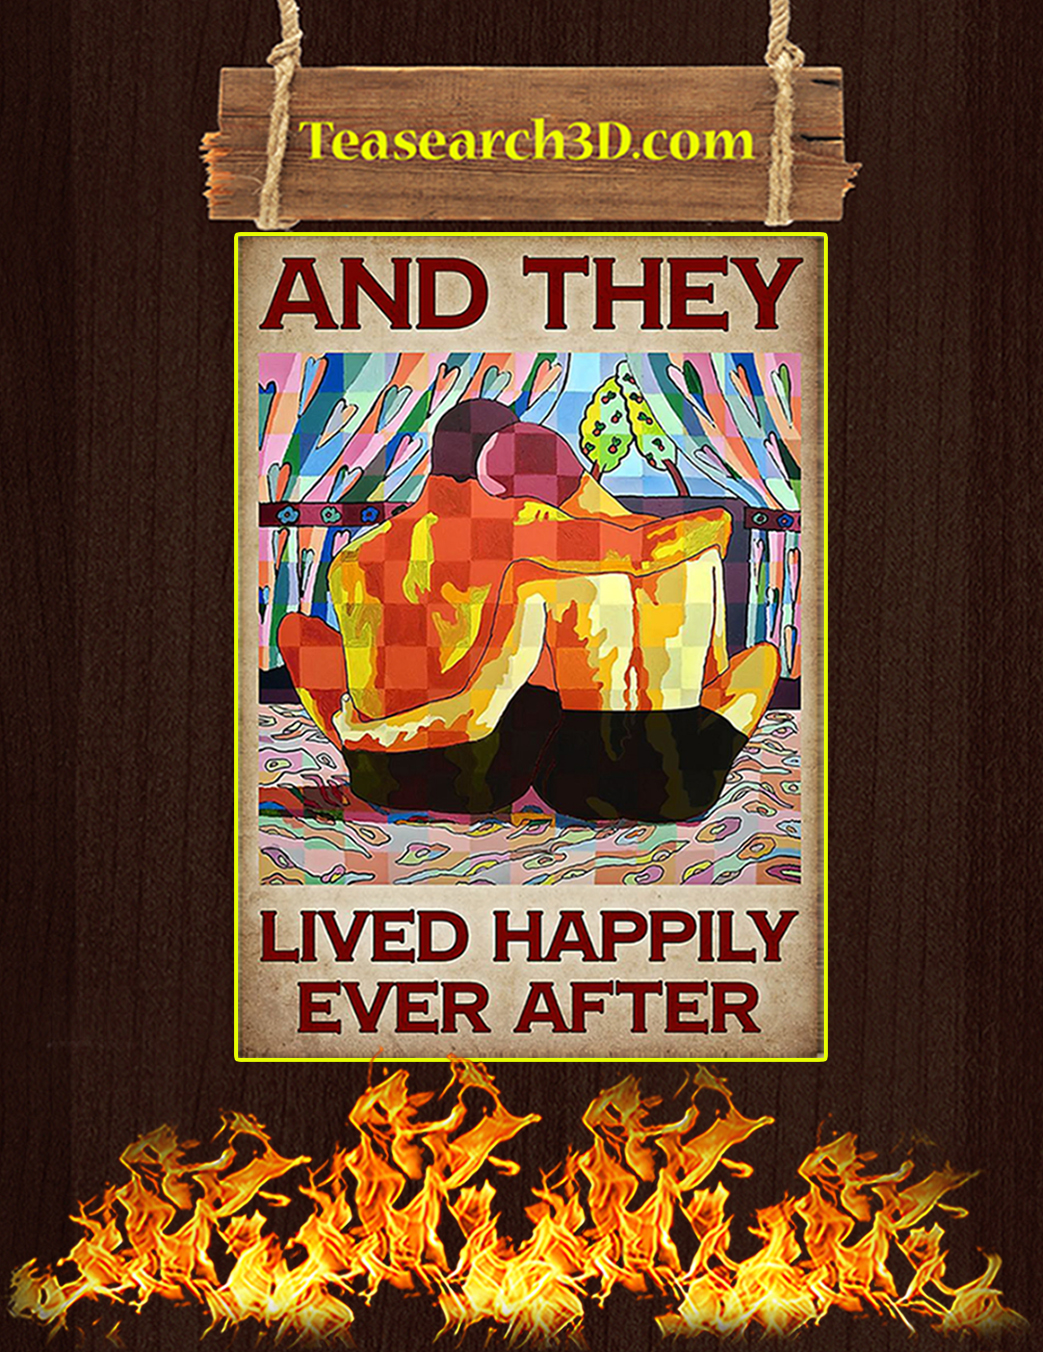 LGBT and they lived happily ever after poster A1